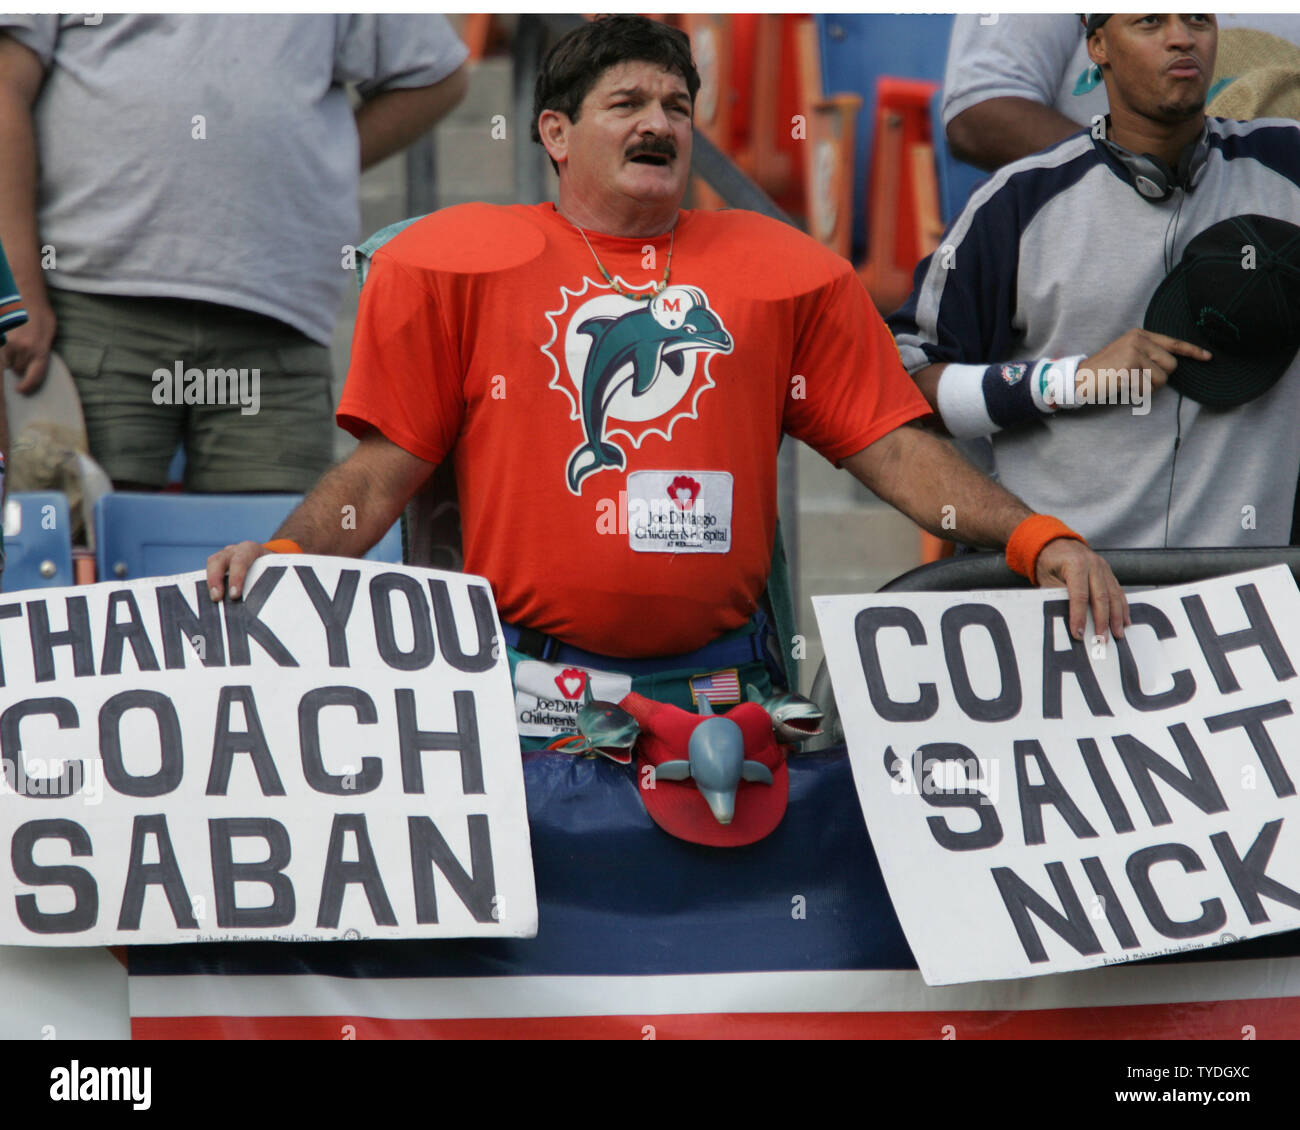 Miami Dolphins fan 'The Miami Maniac' expresses his opinion against the Tenneessee Titans on December 24, 2005 at Dolphins Stadium in Miami FL.  The Miami Dolphins beat the Tennessee Titans 24-10.  (UPI Photo/Susan Knowles) - Stock Image